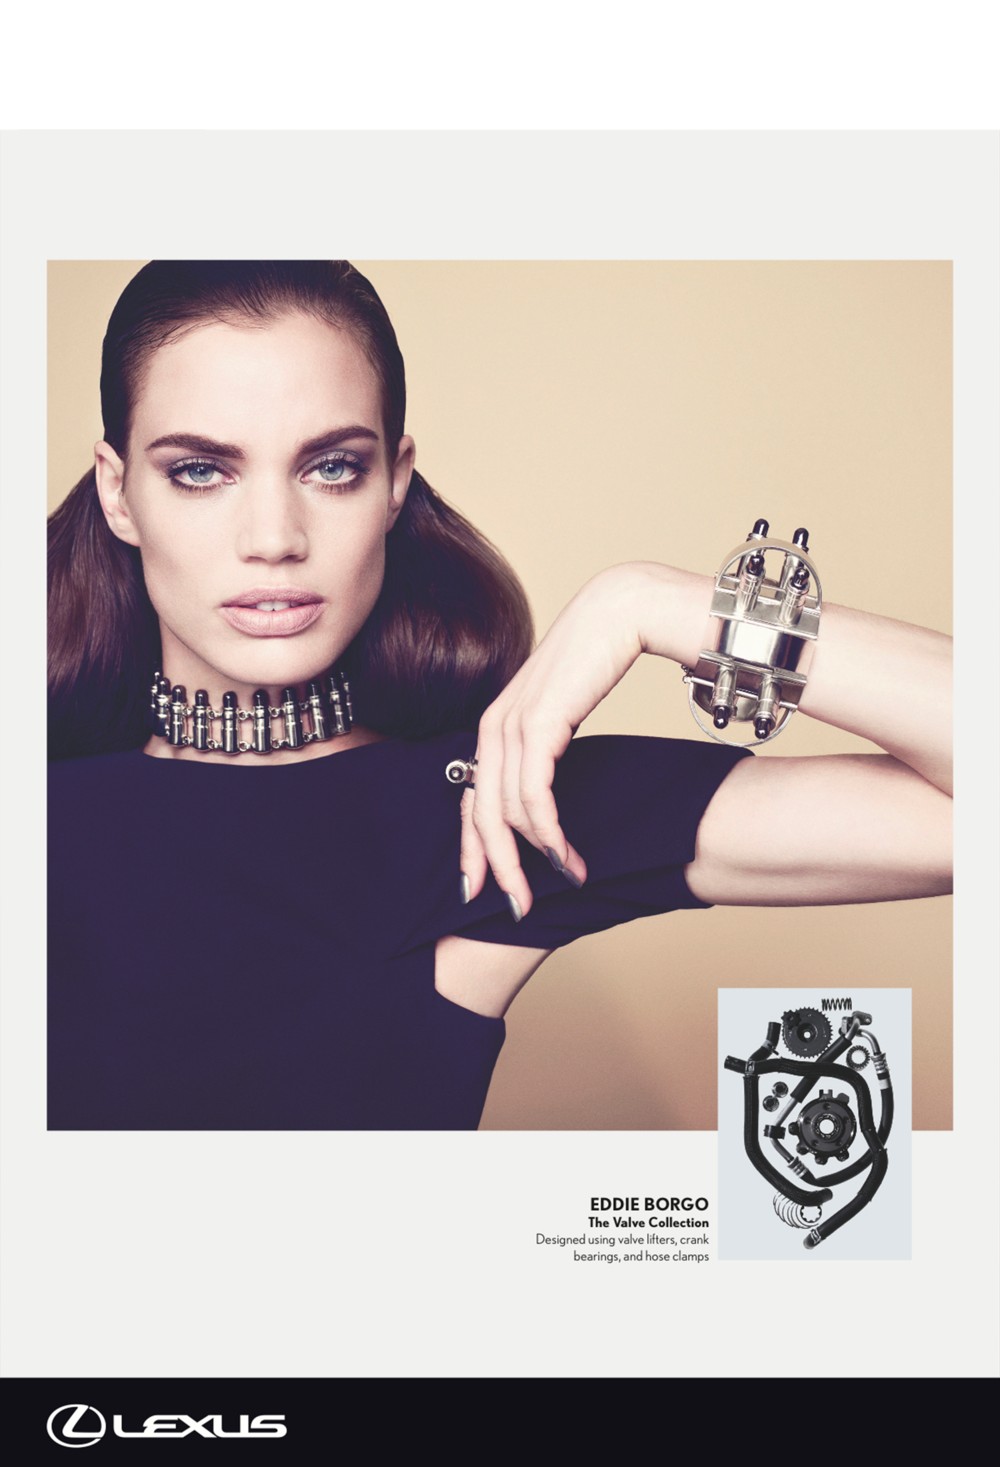 The Valve Collection by Eddie Borgo